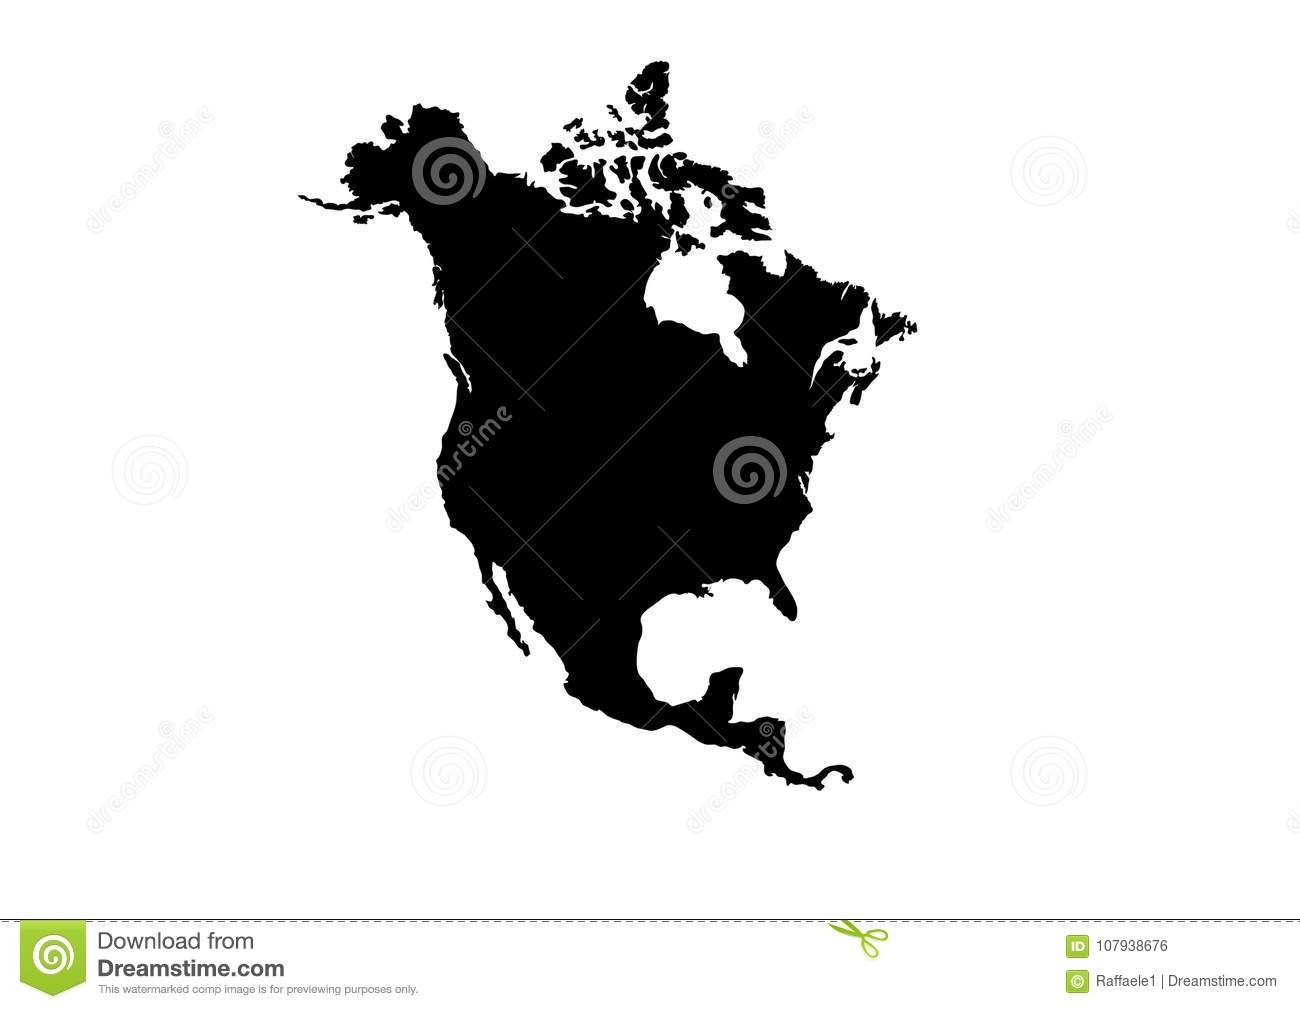 American Map Vector.North America Map Vector Silhouette Stock Vector Illustration Of